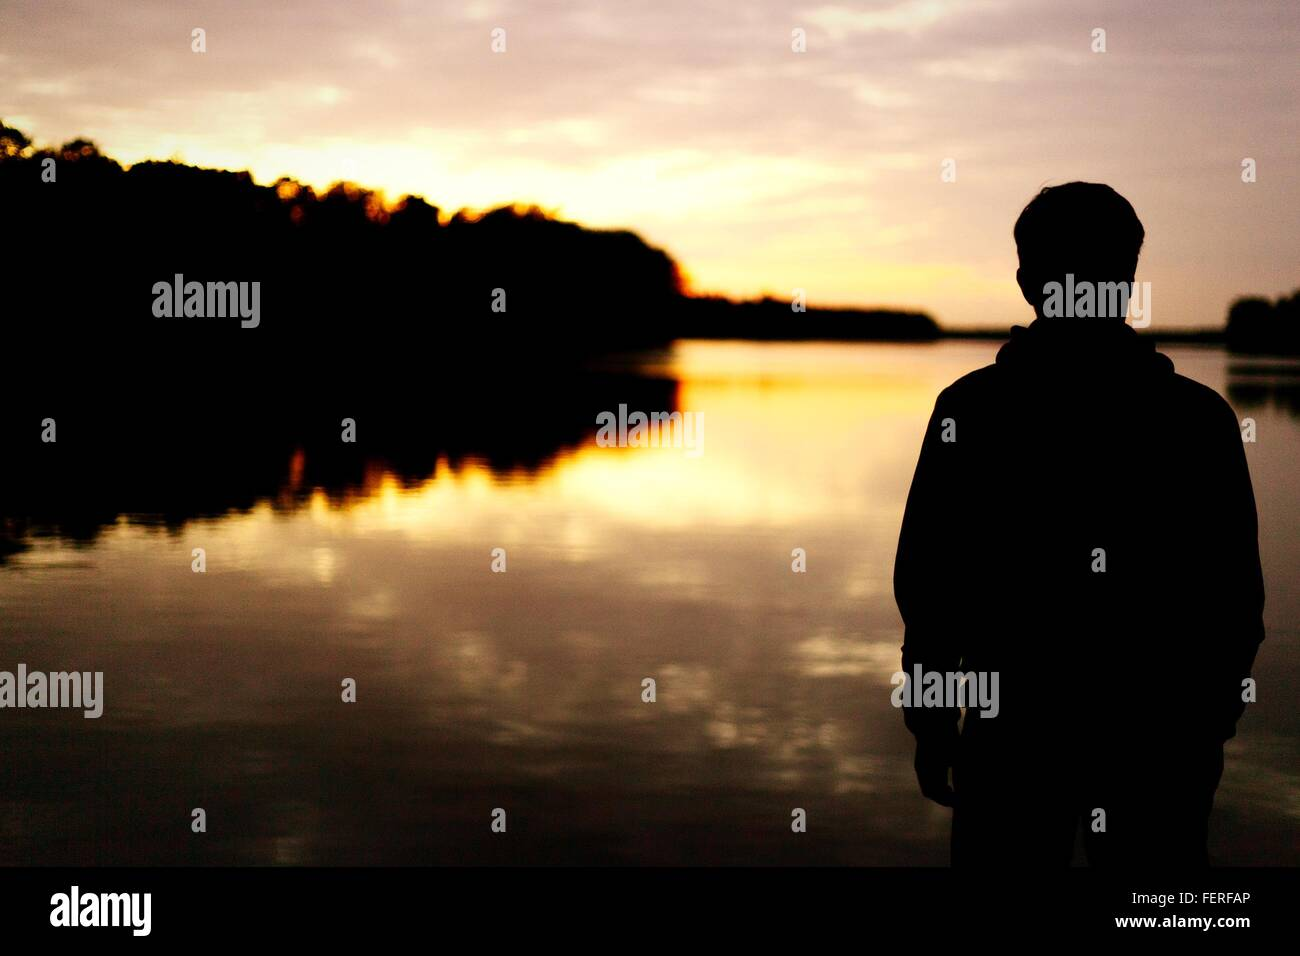 Rear View Of Silhouette Man Standing In Front Of Lake During Sunset - Stock Image